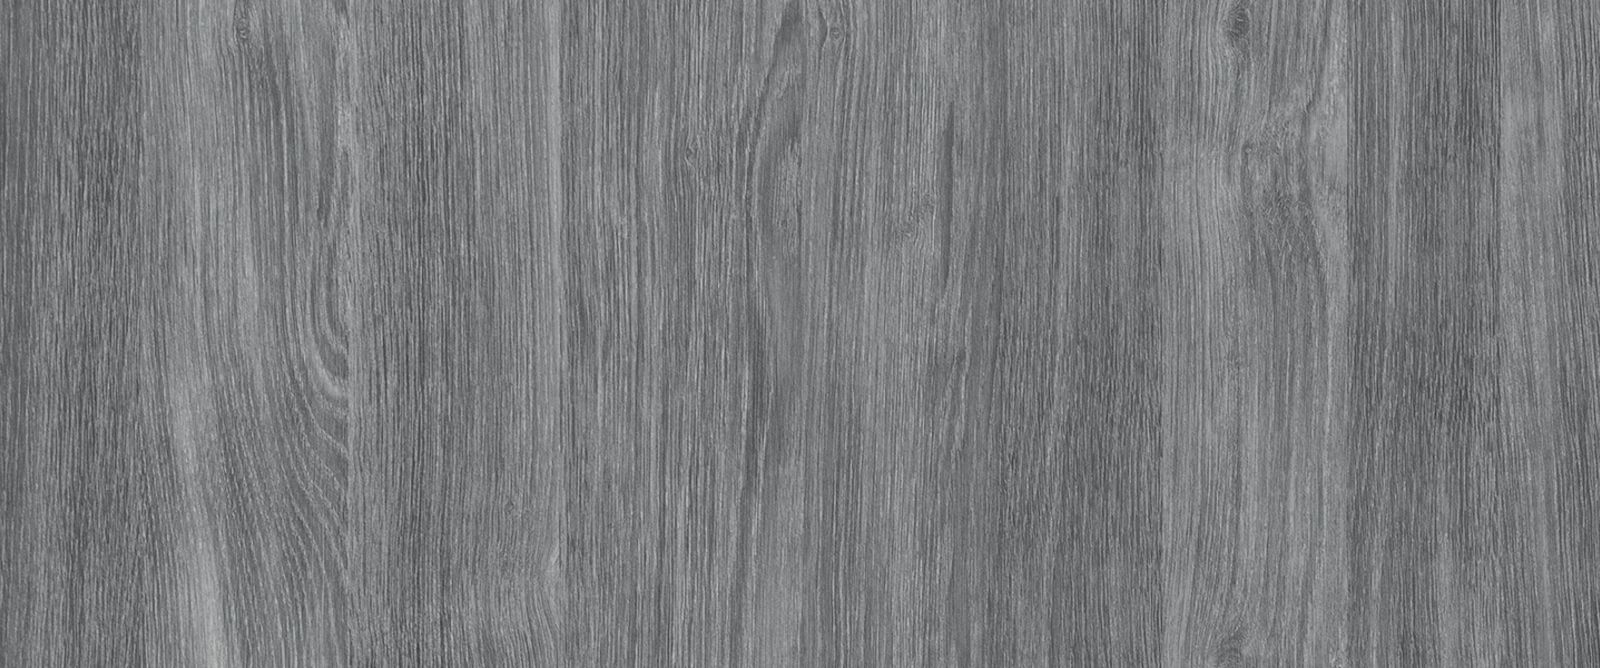 skai® woodec Sheffield Oak concret